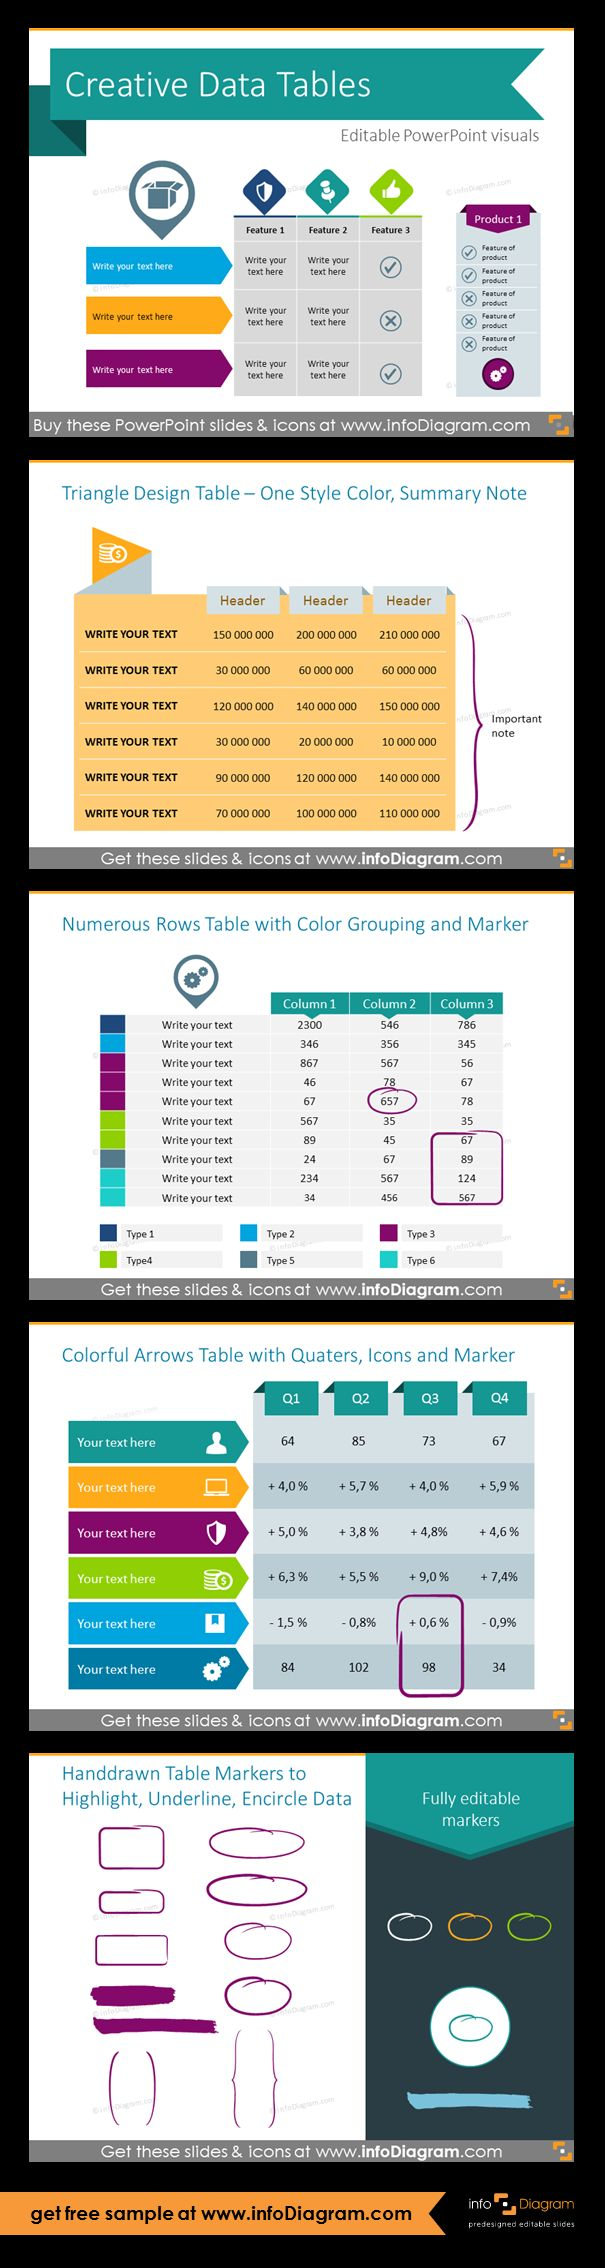 PowerPoint table templates: triangle table design,table for numerous data,colorful arrows table. highlight markers to underline and encircle data. All icons and tables are fully editable, so you can adapt colors to you brand positioning.